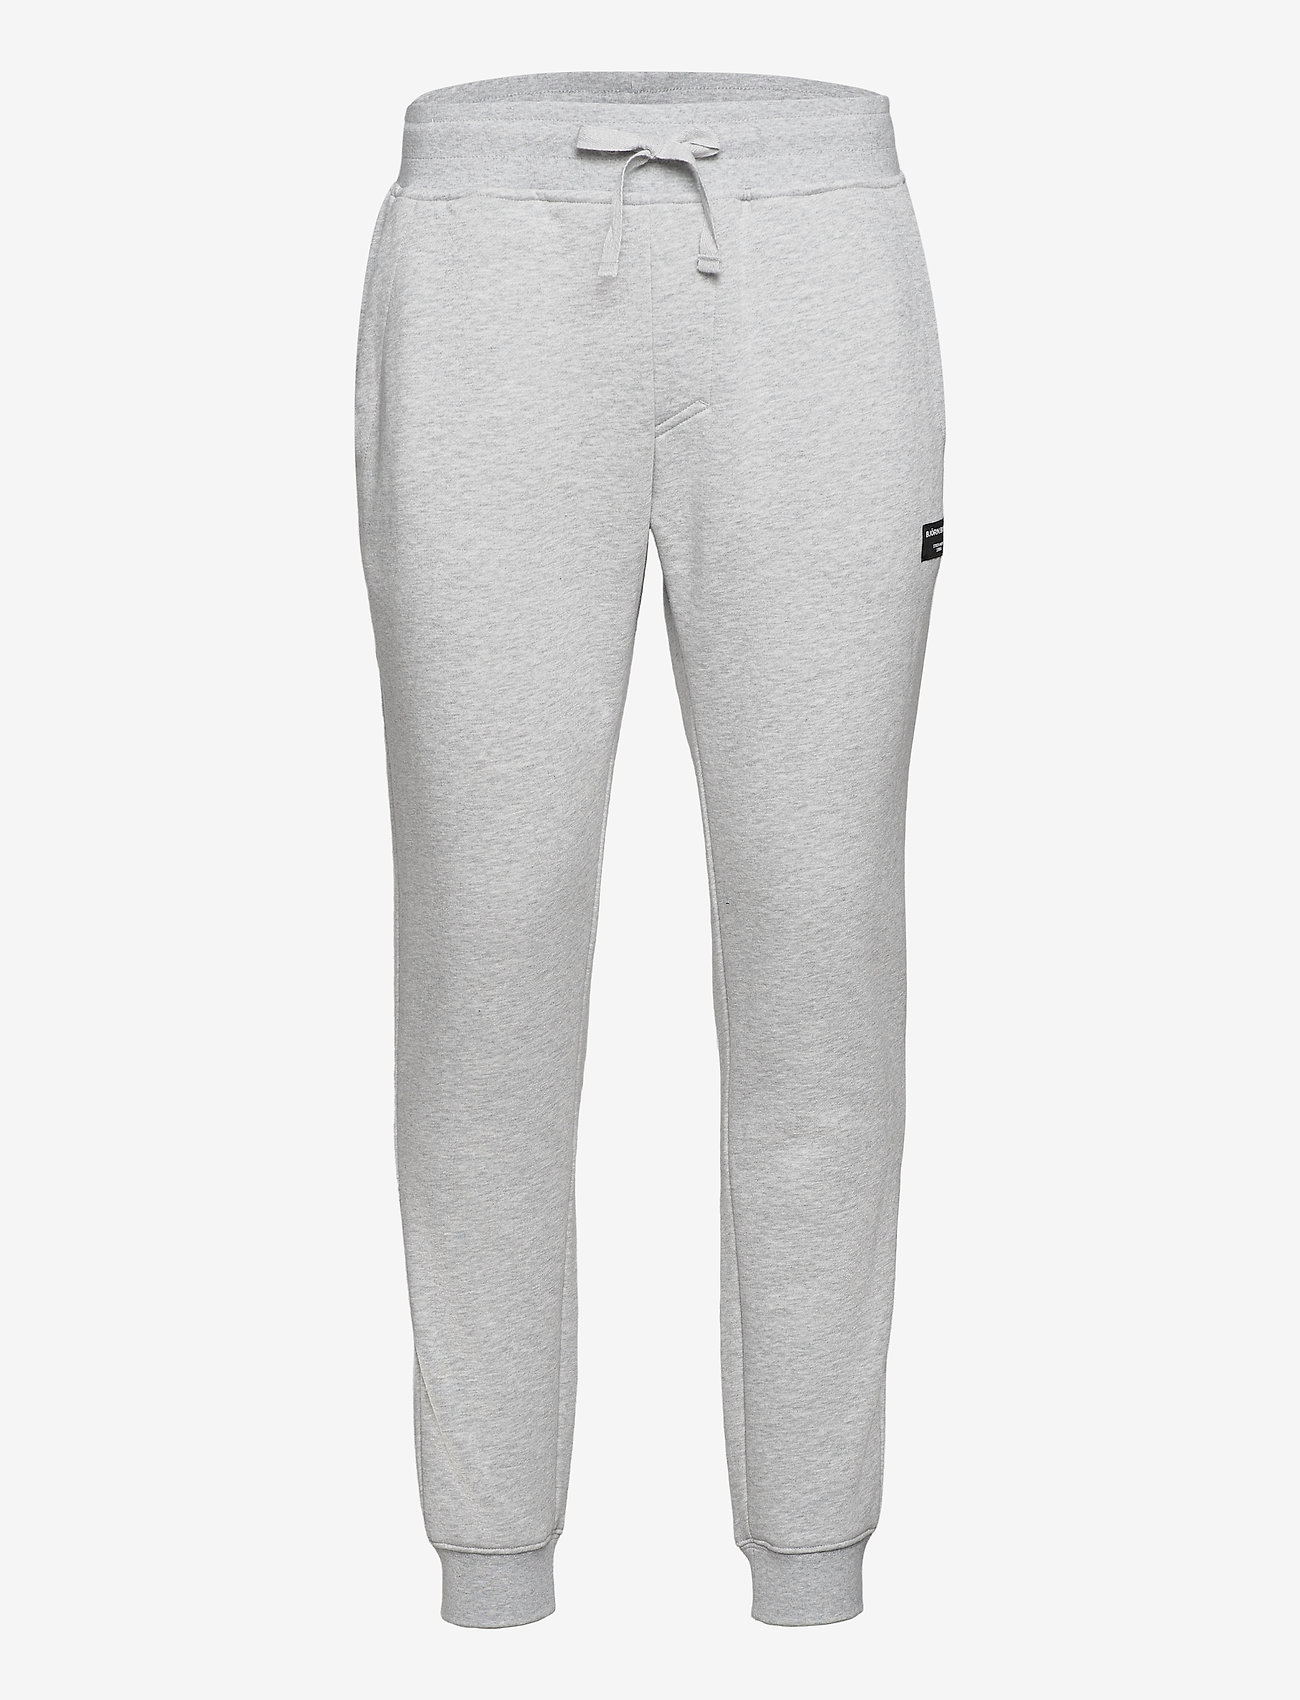 Björn Borg - TAPERED PANT CENTRE CENTRE - joggebukser - h108by light grey melange - 0